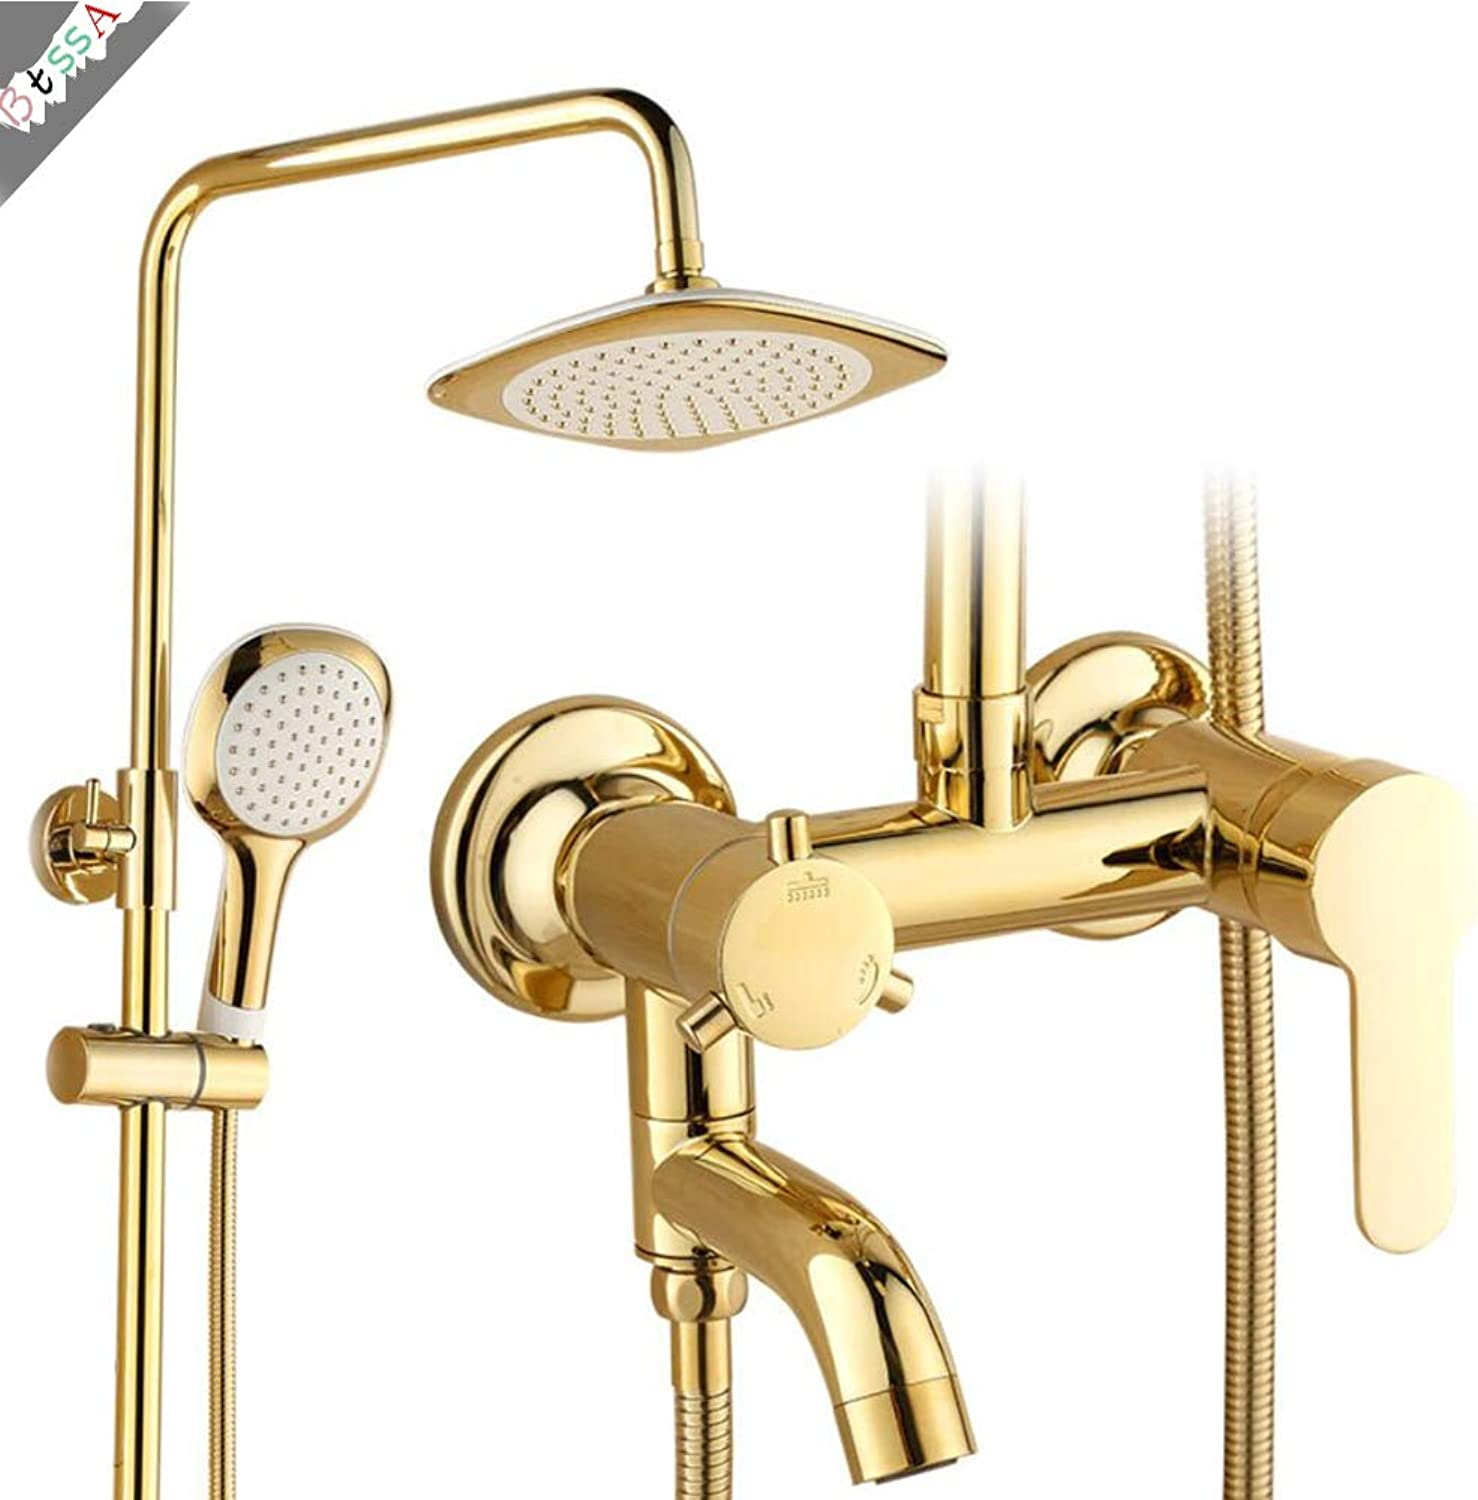 BTSSA Shower System, Wall Mounted Shower Faucet Set for Bathroom with High Pressure 8  Rain and Shower Head Set